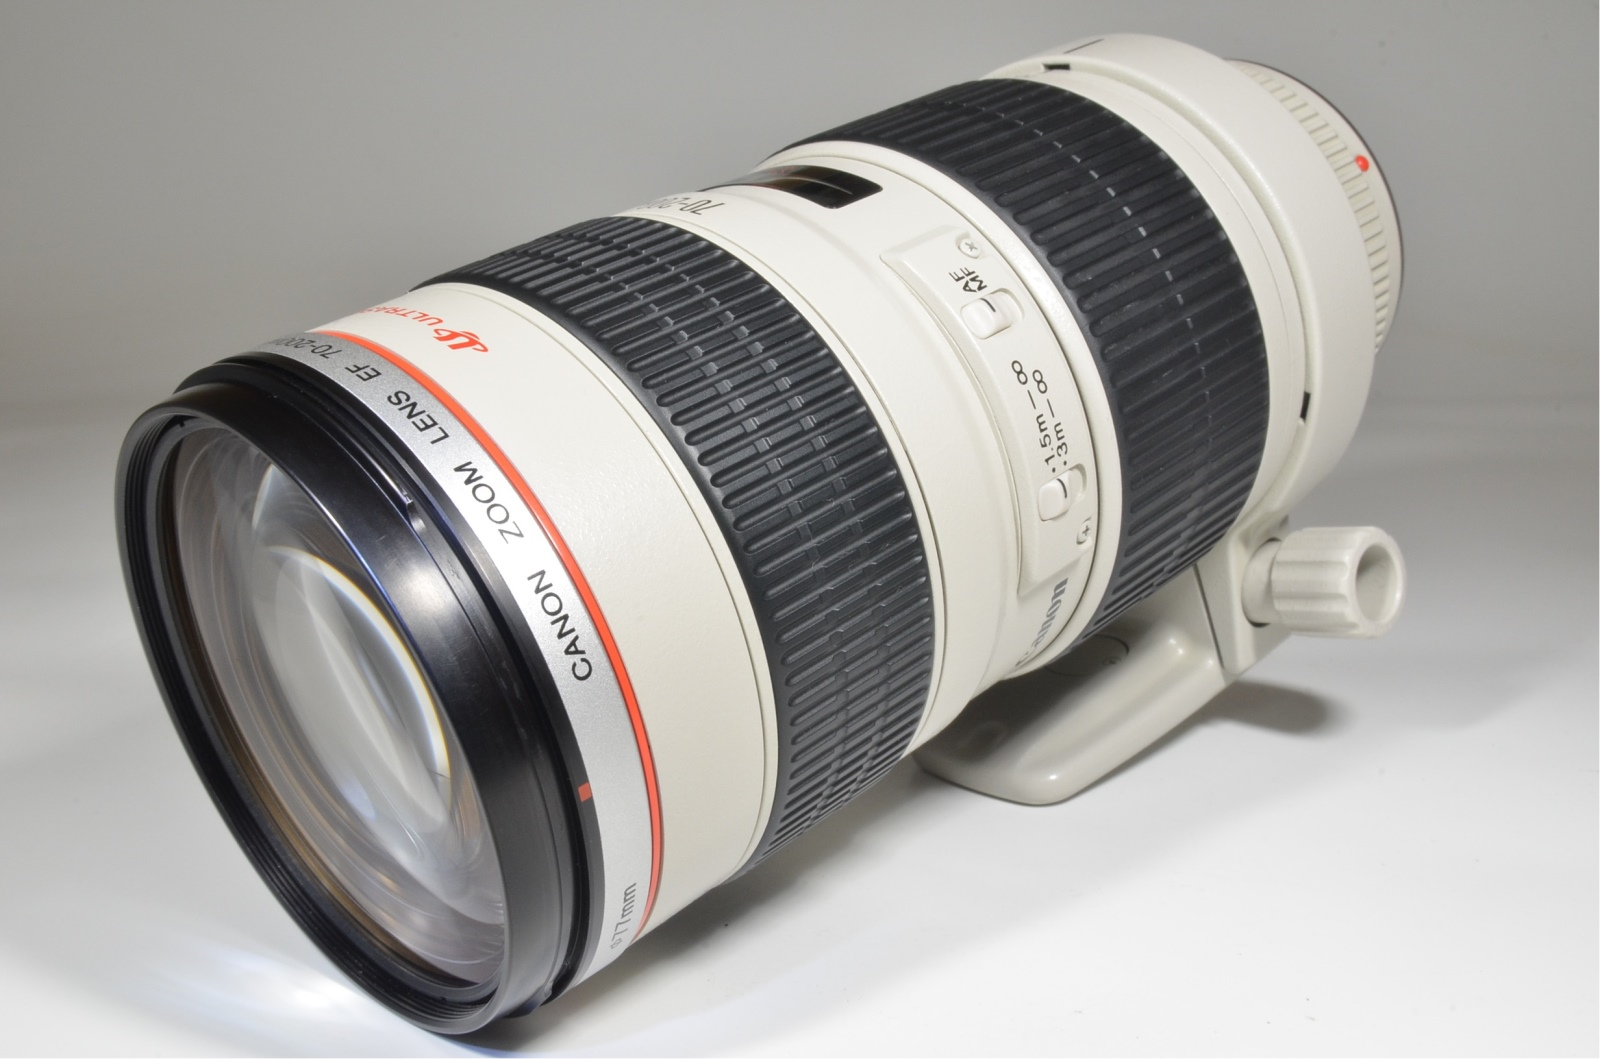 canon ef 70-200mm f/2.8 l usm ultrasonic